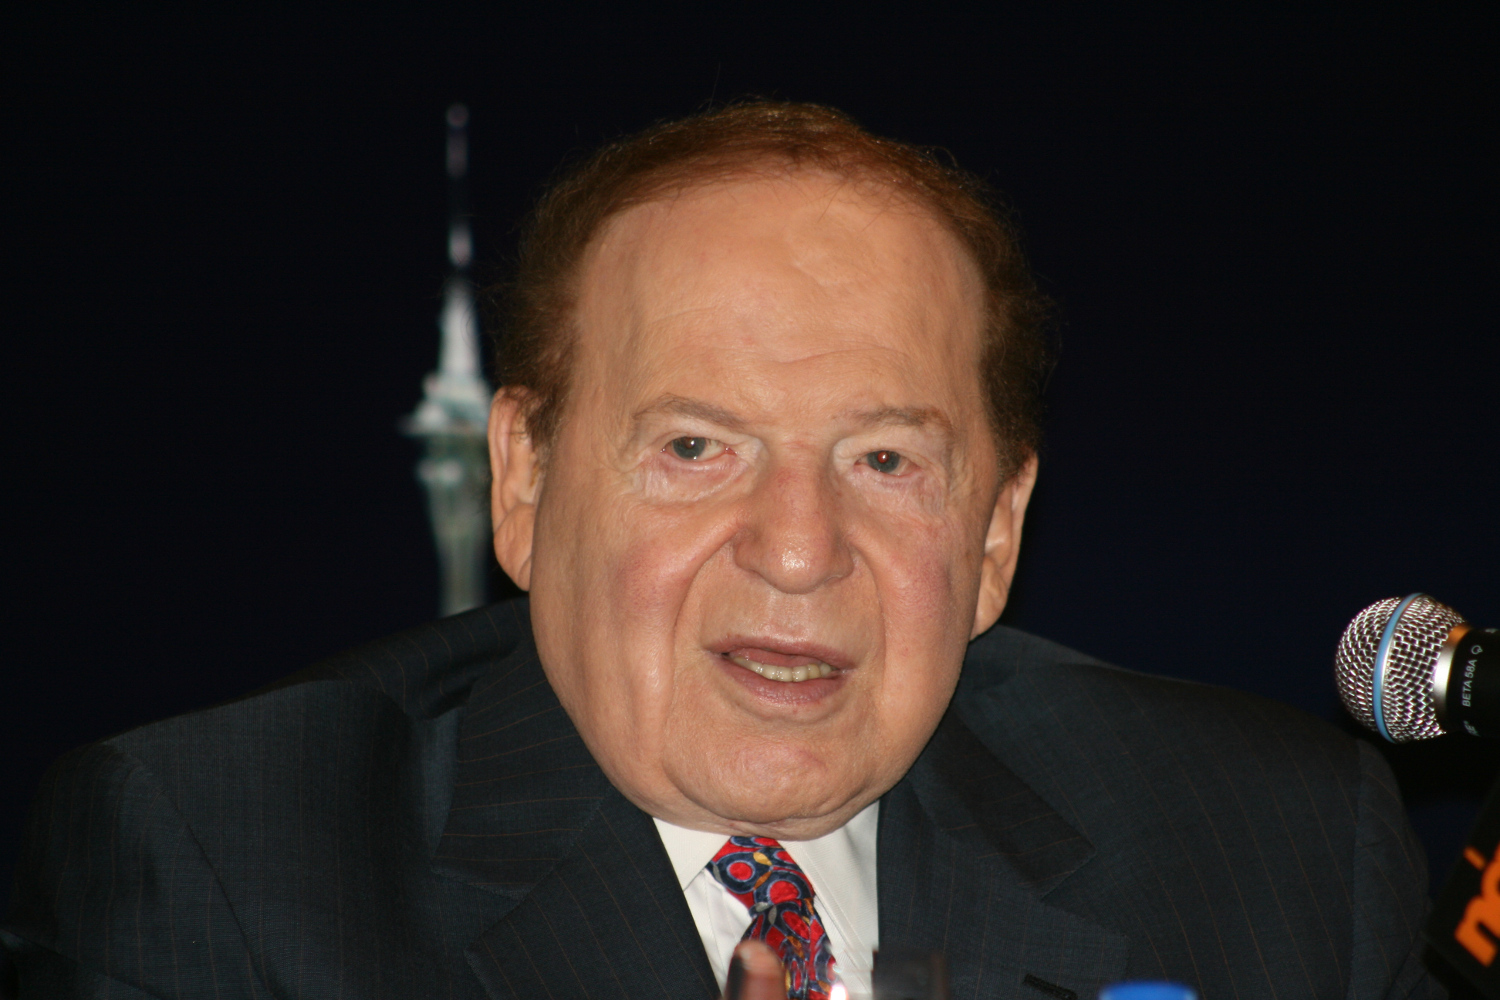 Sheldon_Adelson_21_June_2010 (1)